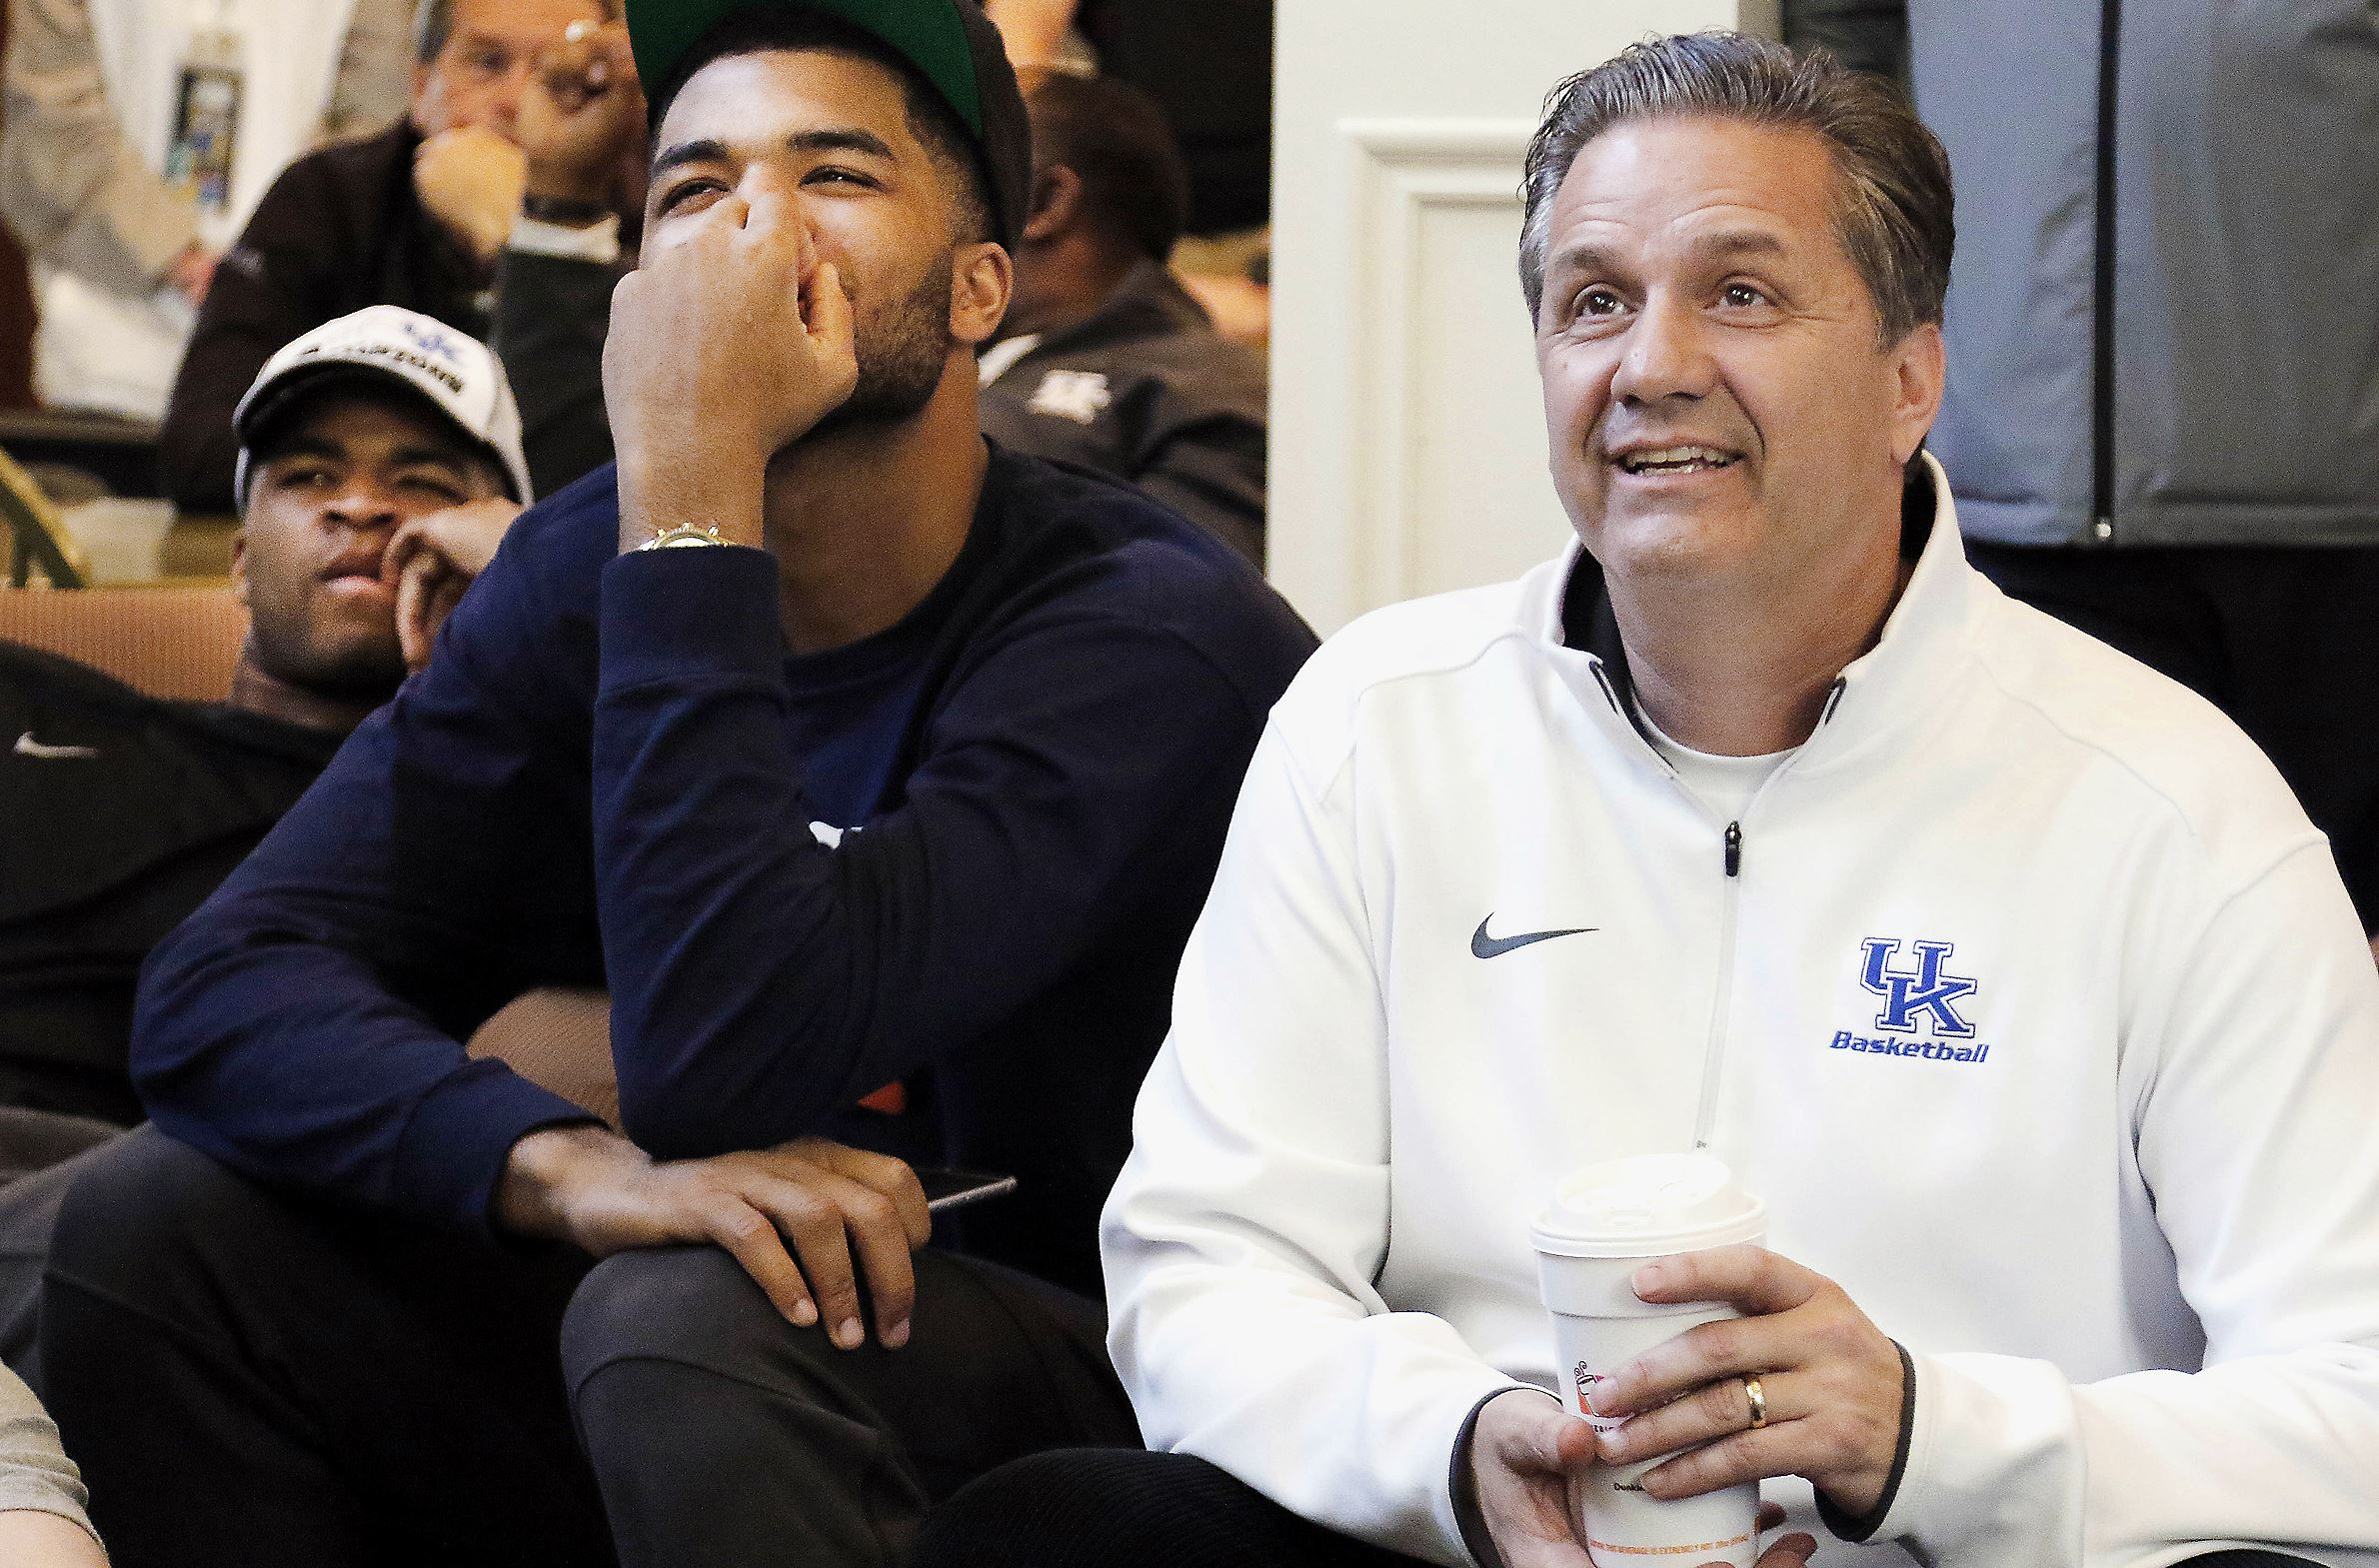 Uk Basketball: Kentucky Coach John Calipari Does Things His Way